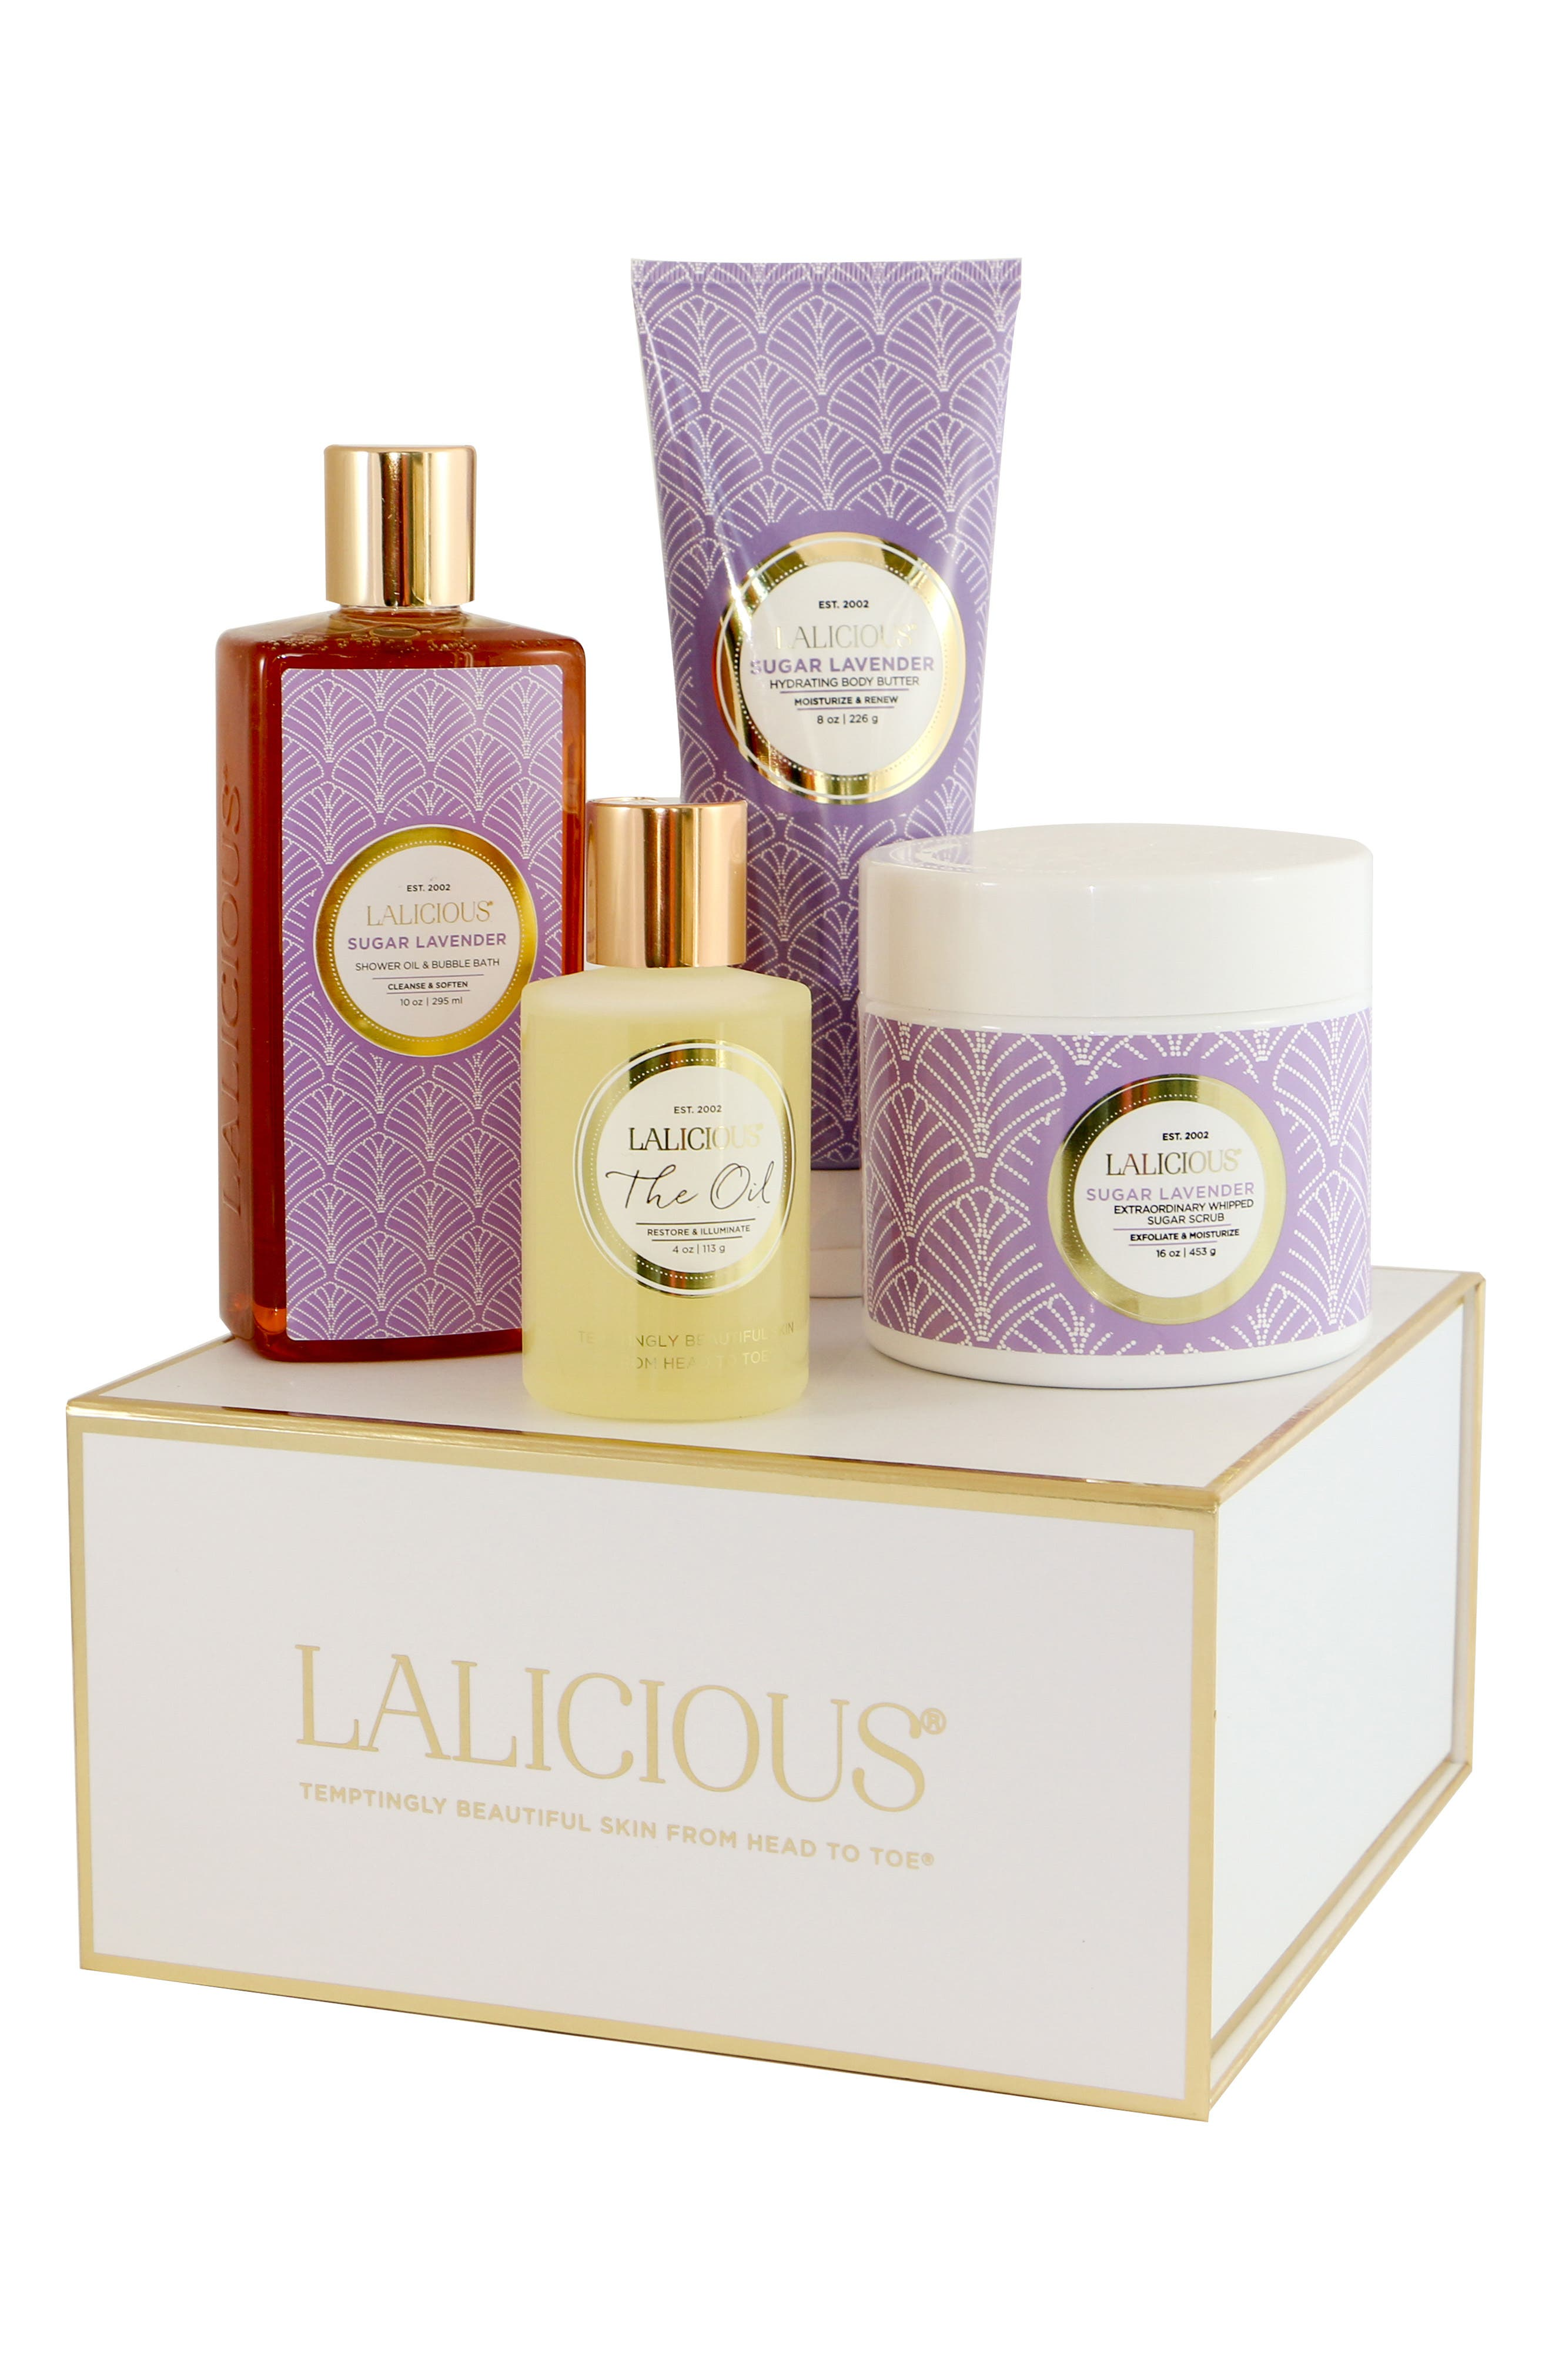 Alternate Image 1 Selected - LALICIOUS Sugar Lavender At Home Spa Collection (Nordstrom Exclusive) ($117 Value)